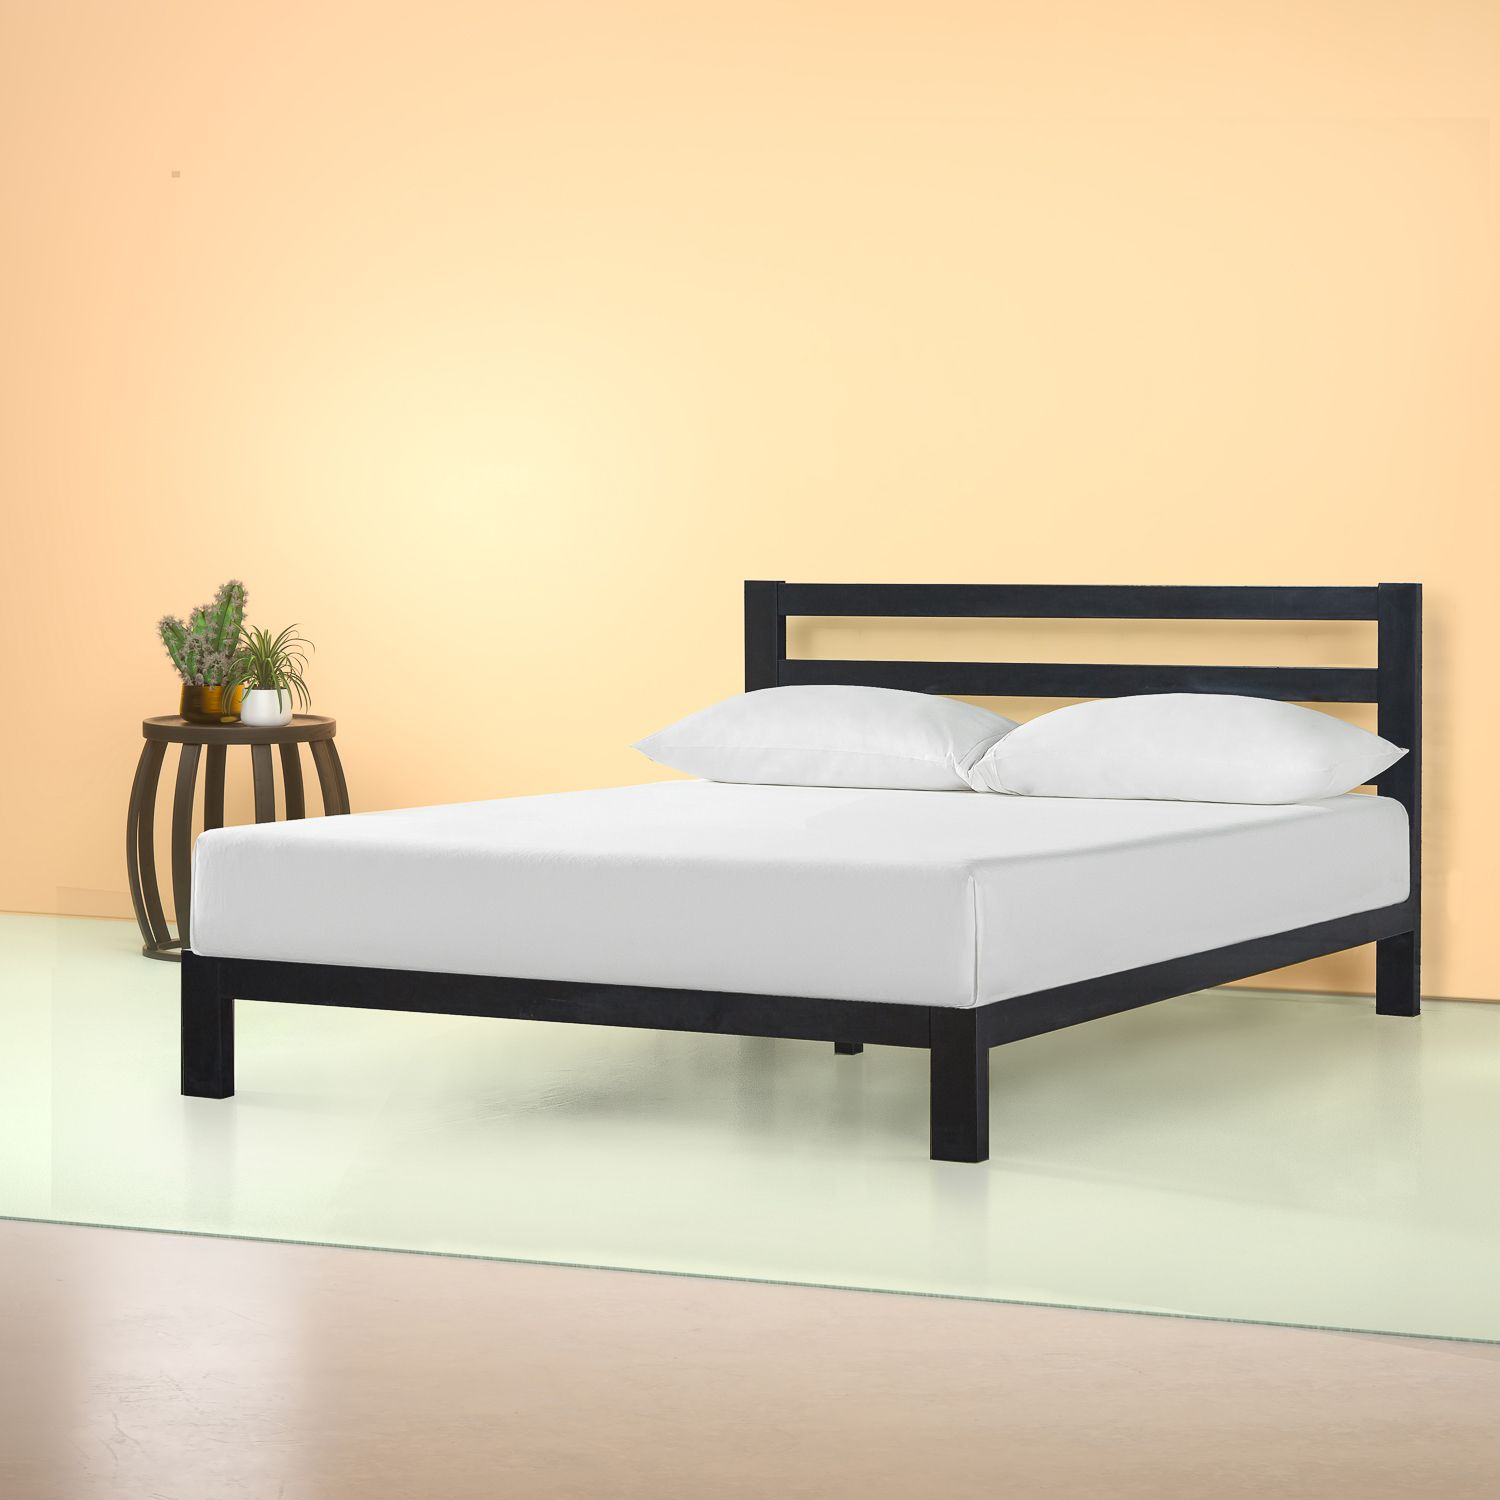 Pin By Cansitong On Metal Platform Bed In 2020 Metal Platform Bed Headboards For Beds Platform Bed